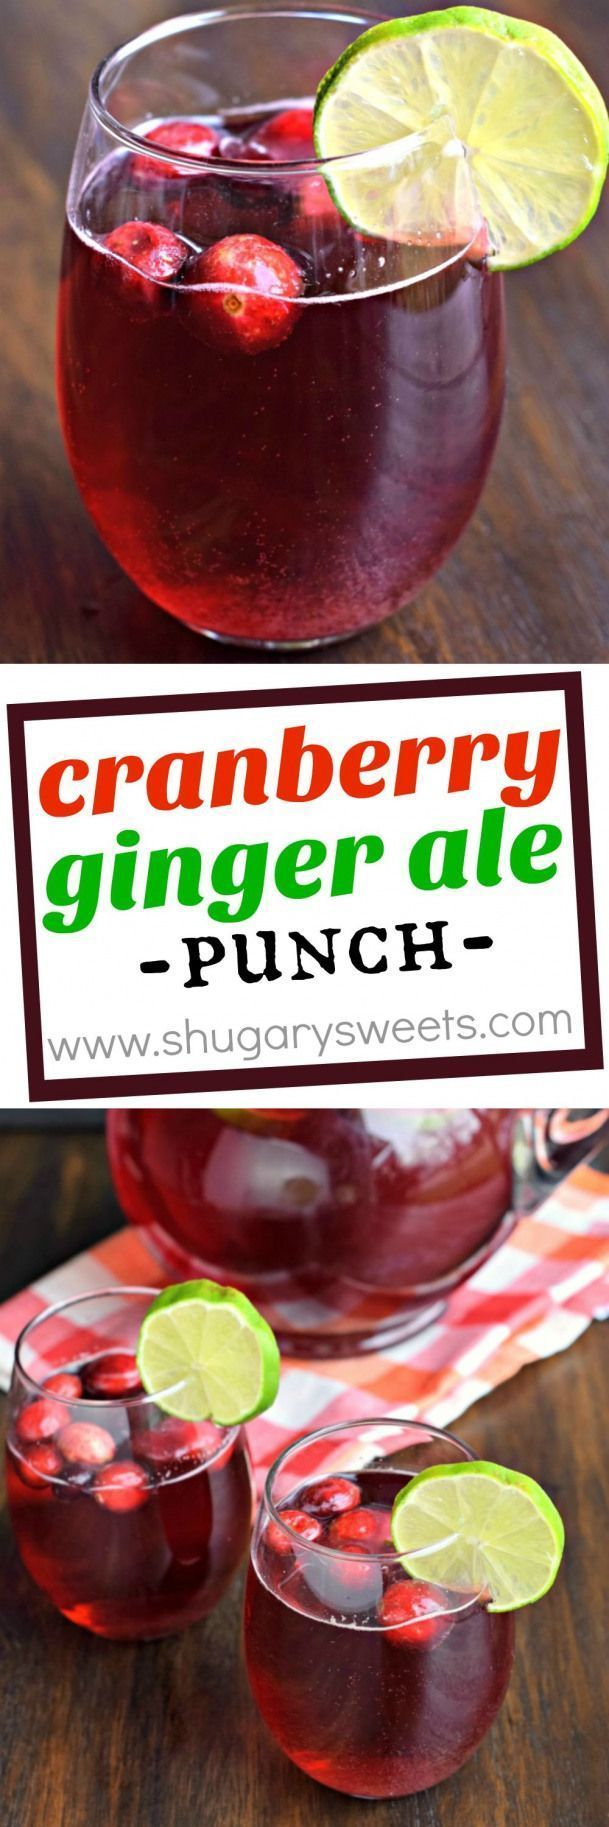 Newest Images Non alcoholic drinks cranberry Tips ,  #alcoholic #cranberry #drinks #Images #N…